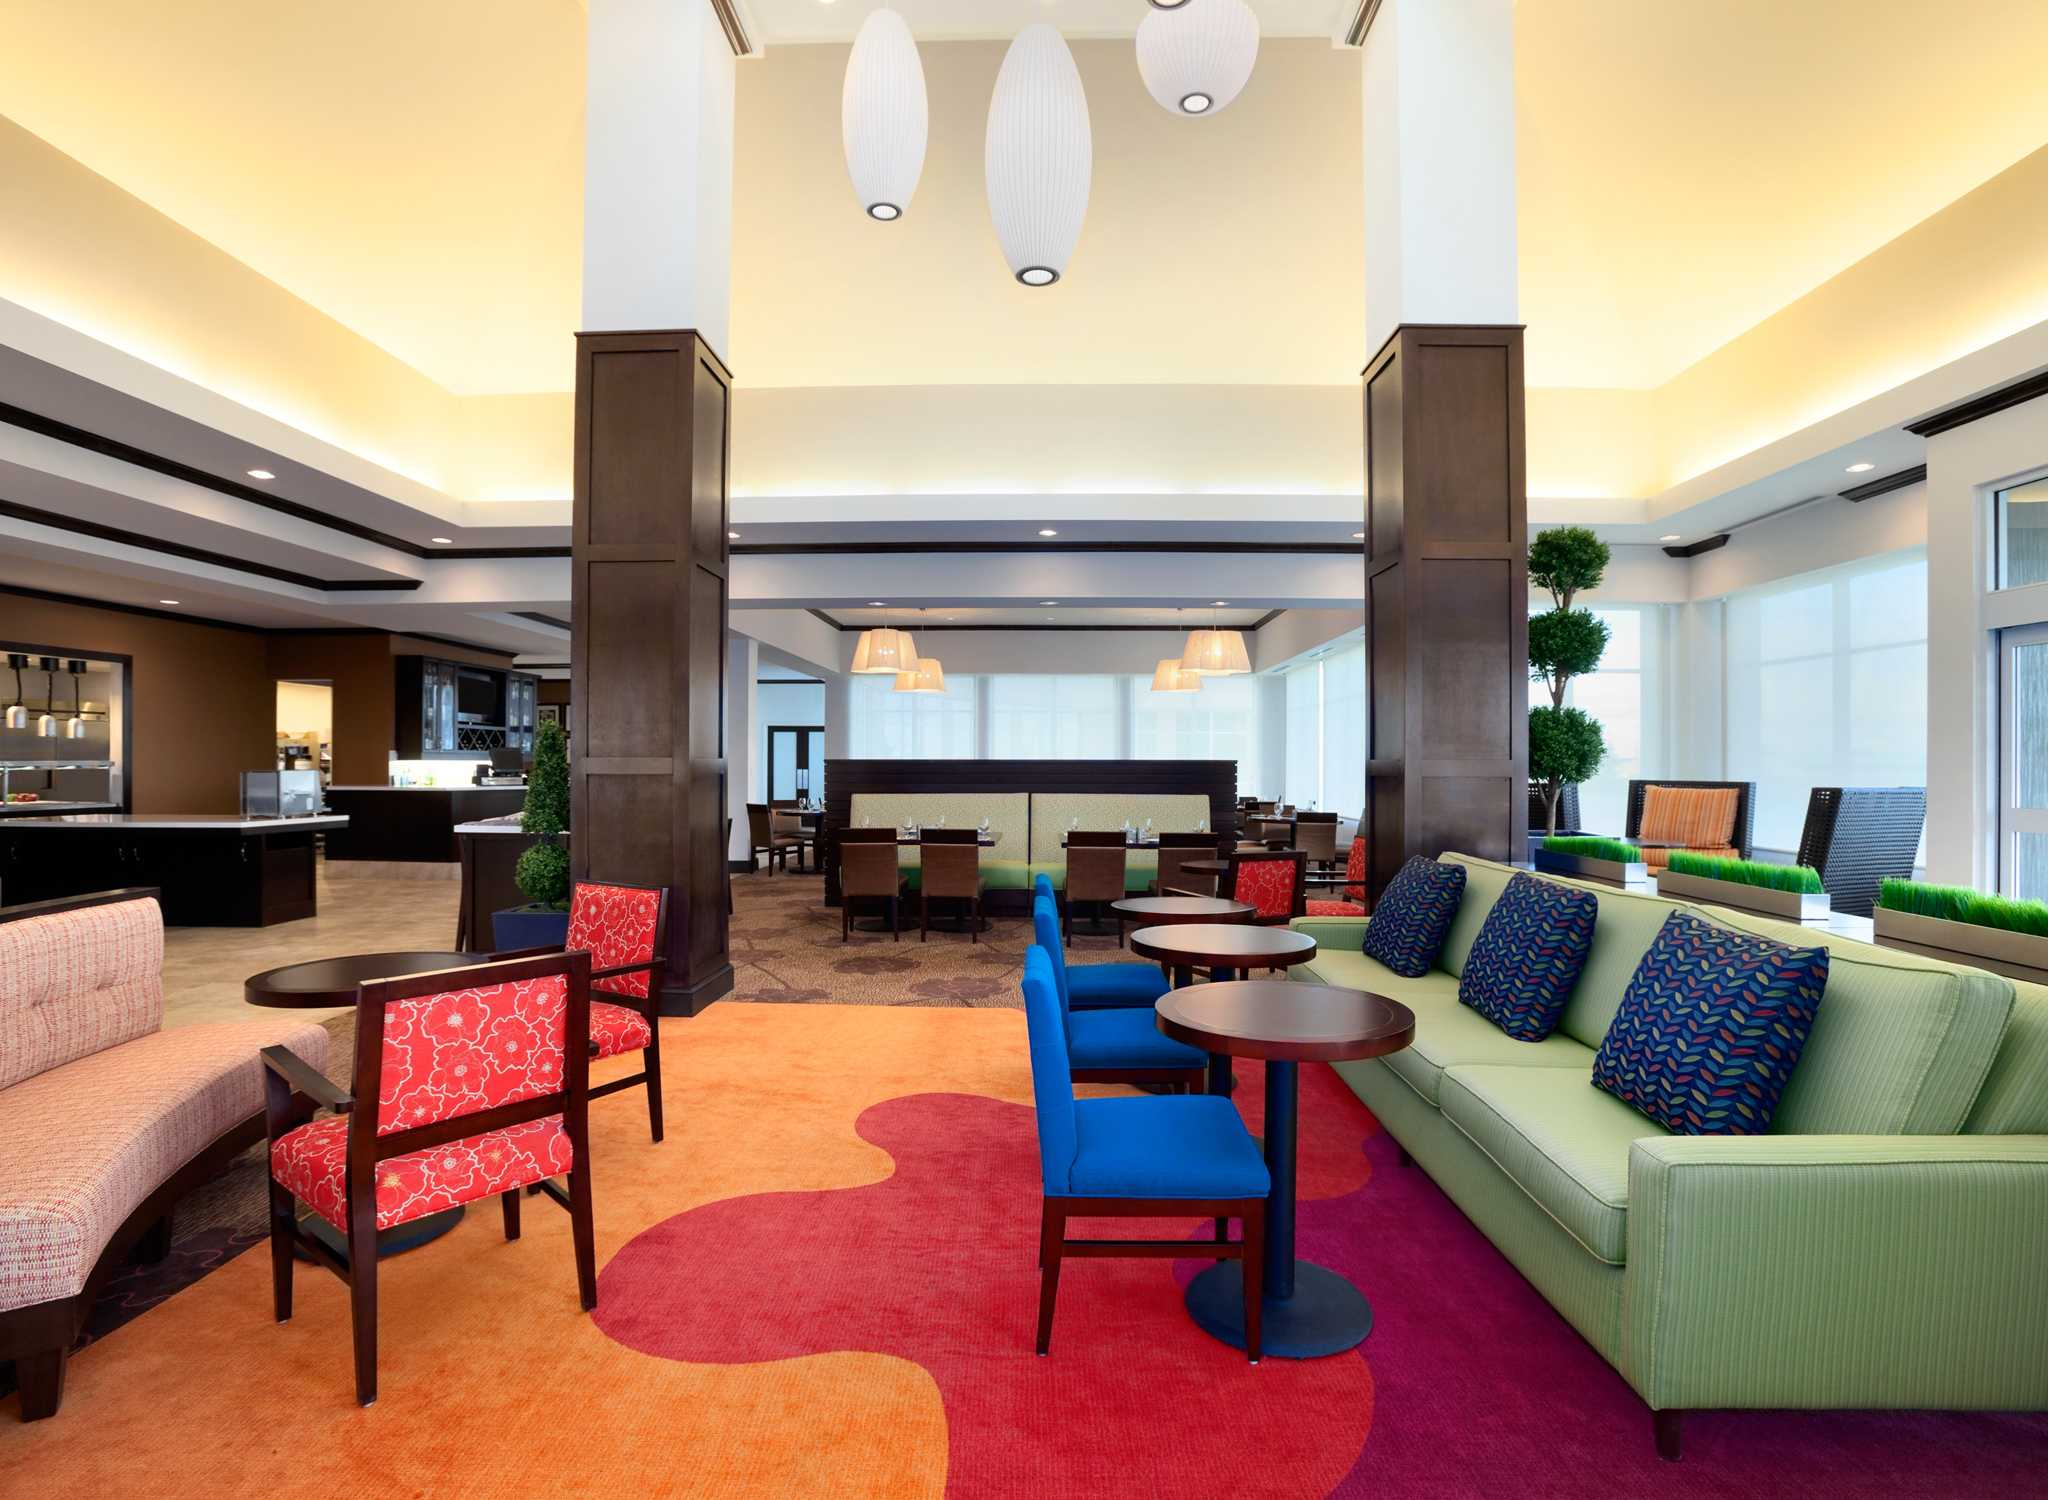 hilton international hotels Waldorf astoria hotels and resorts offers upscale and luxury accommodations in the world's top destinations.